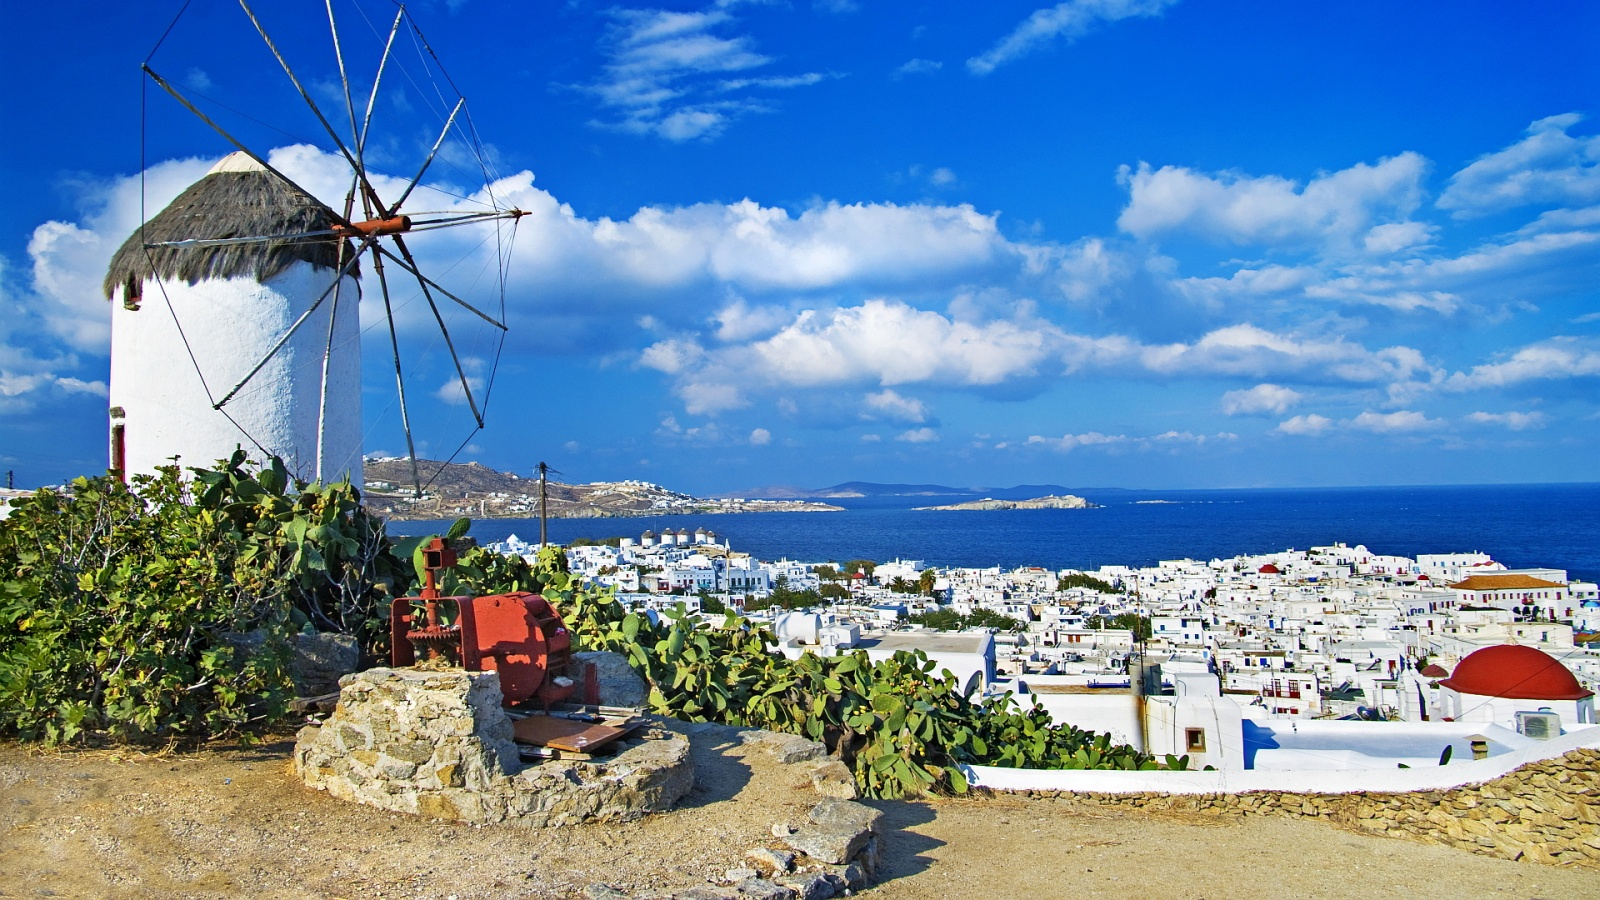 mykonos-greece-1600x900